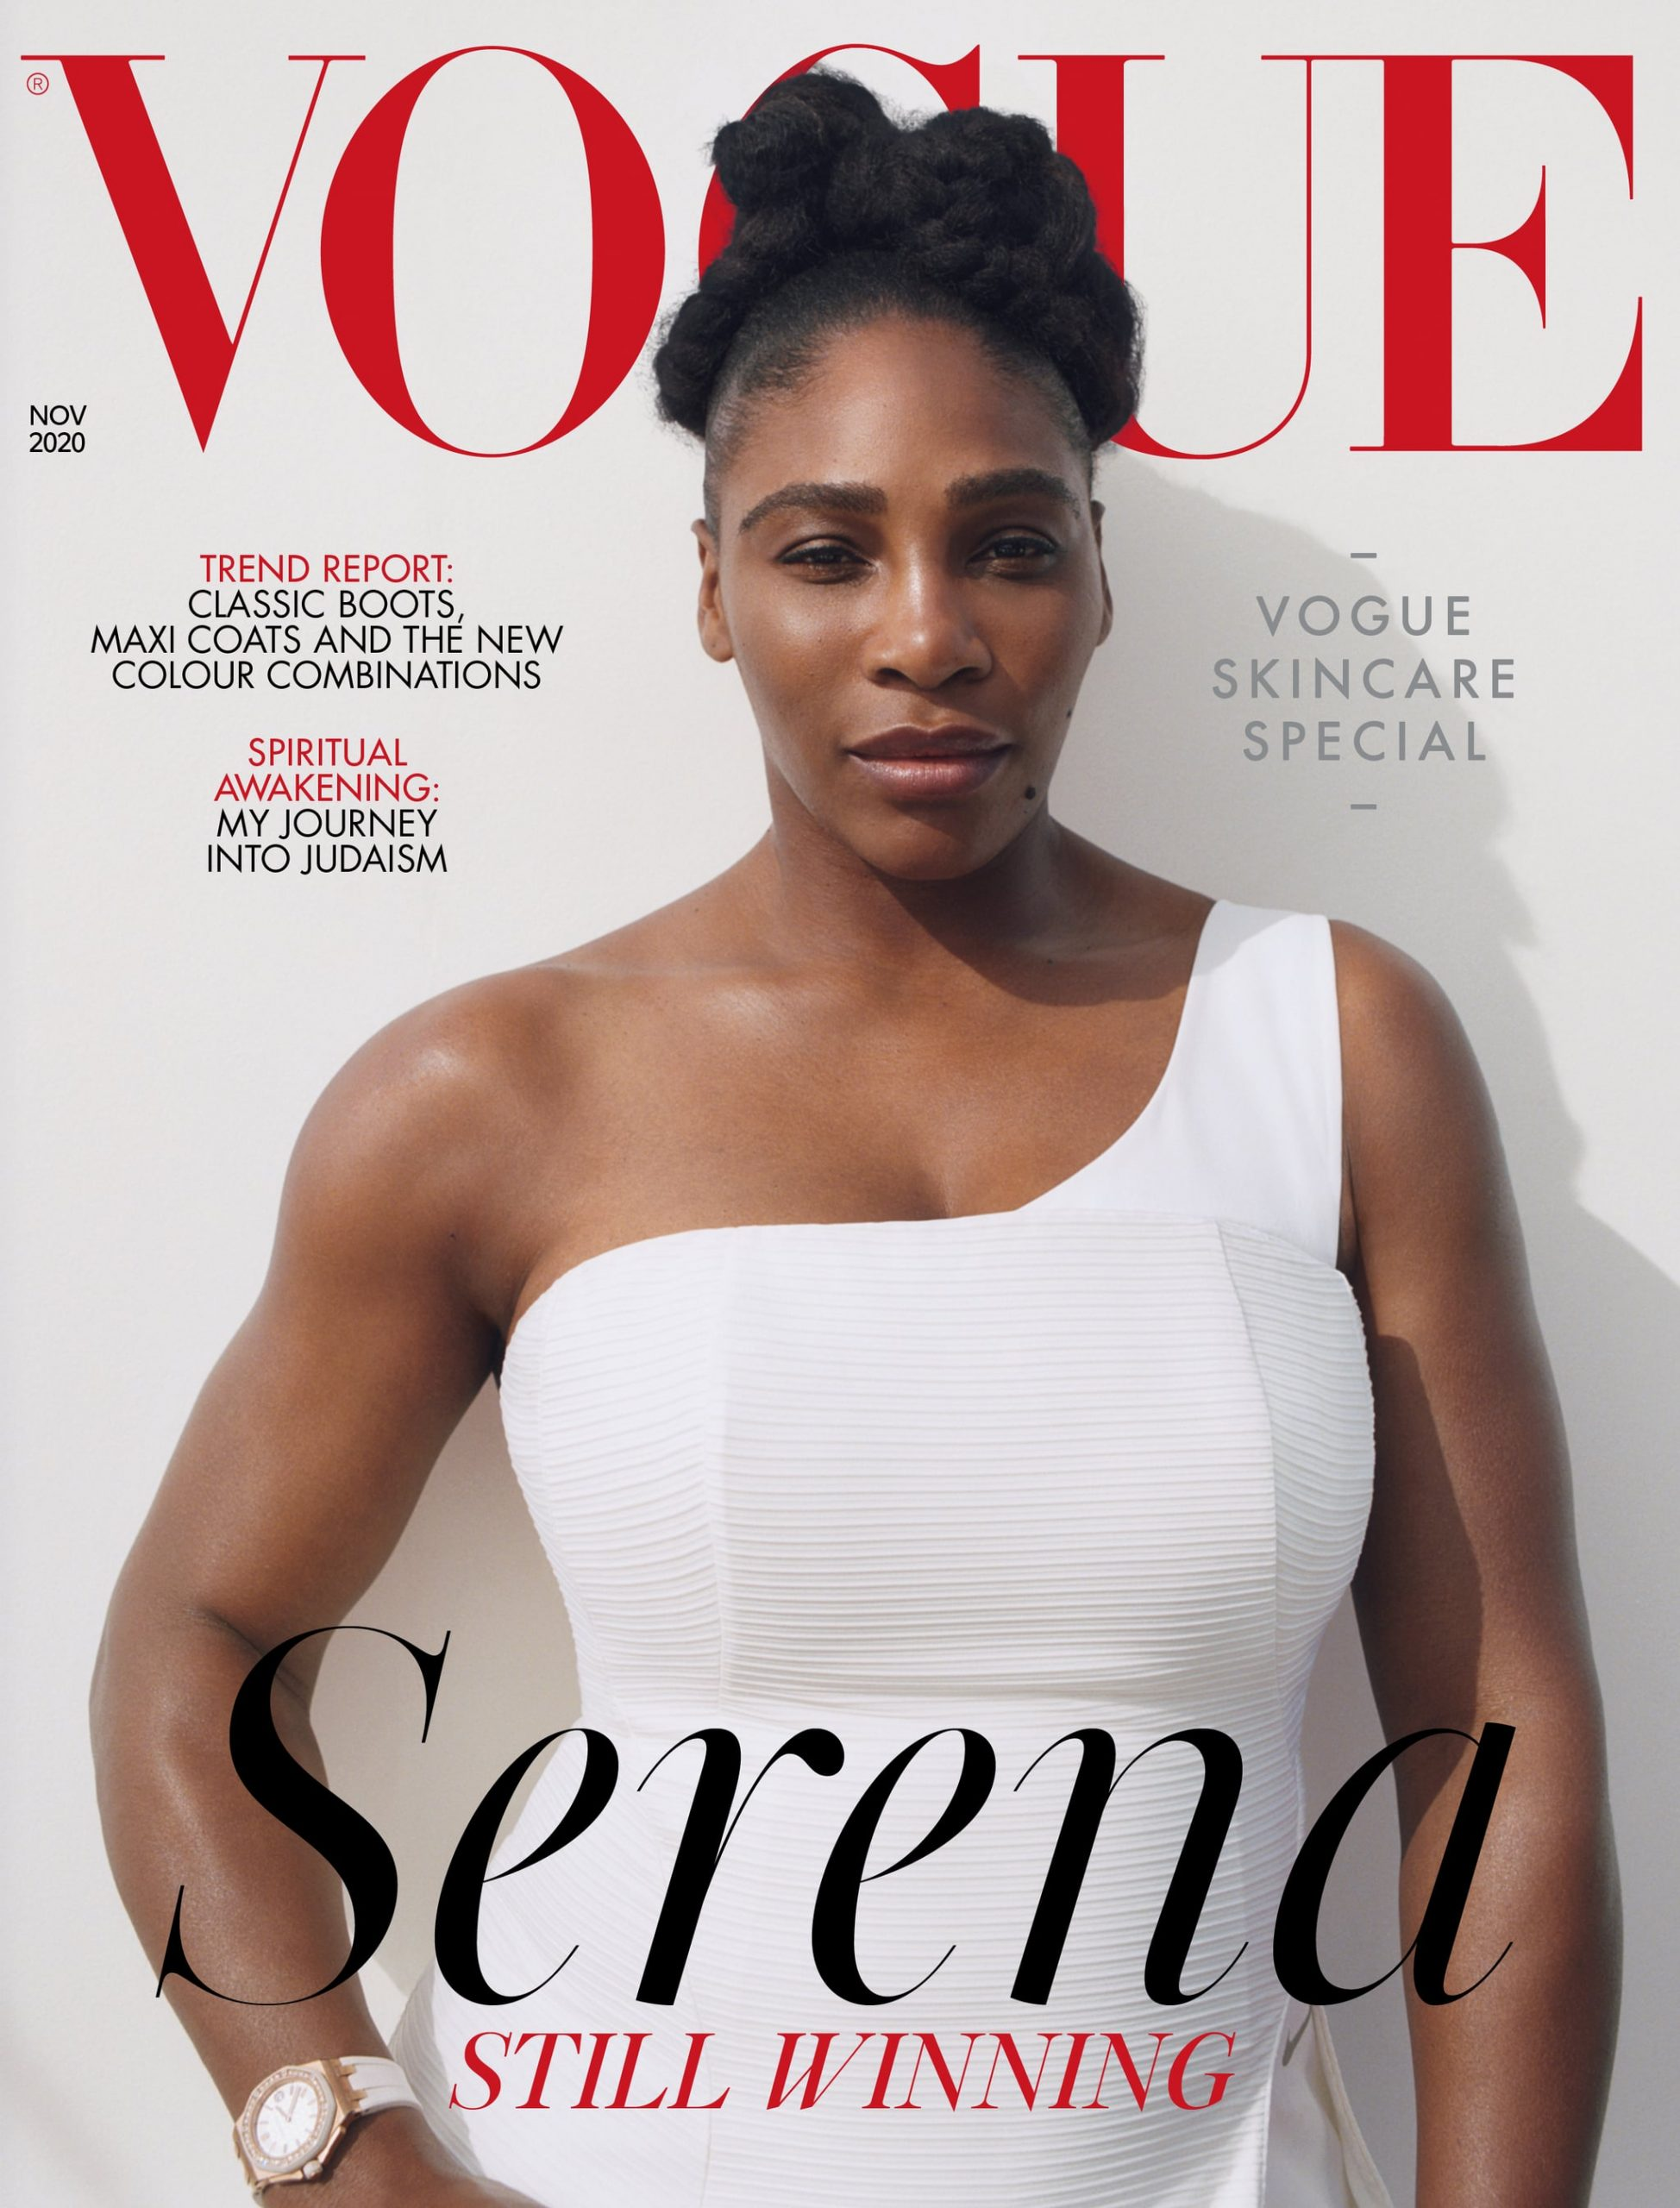 Serena Williams on November 2020 Issue Cover of British Vogue